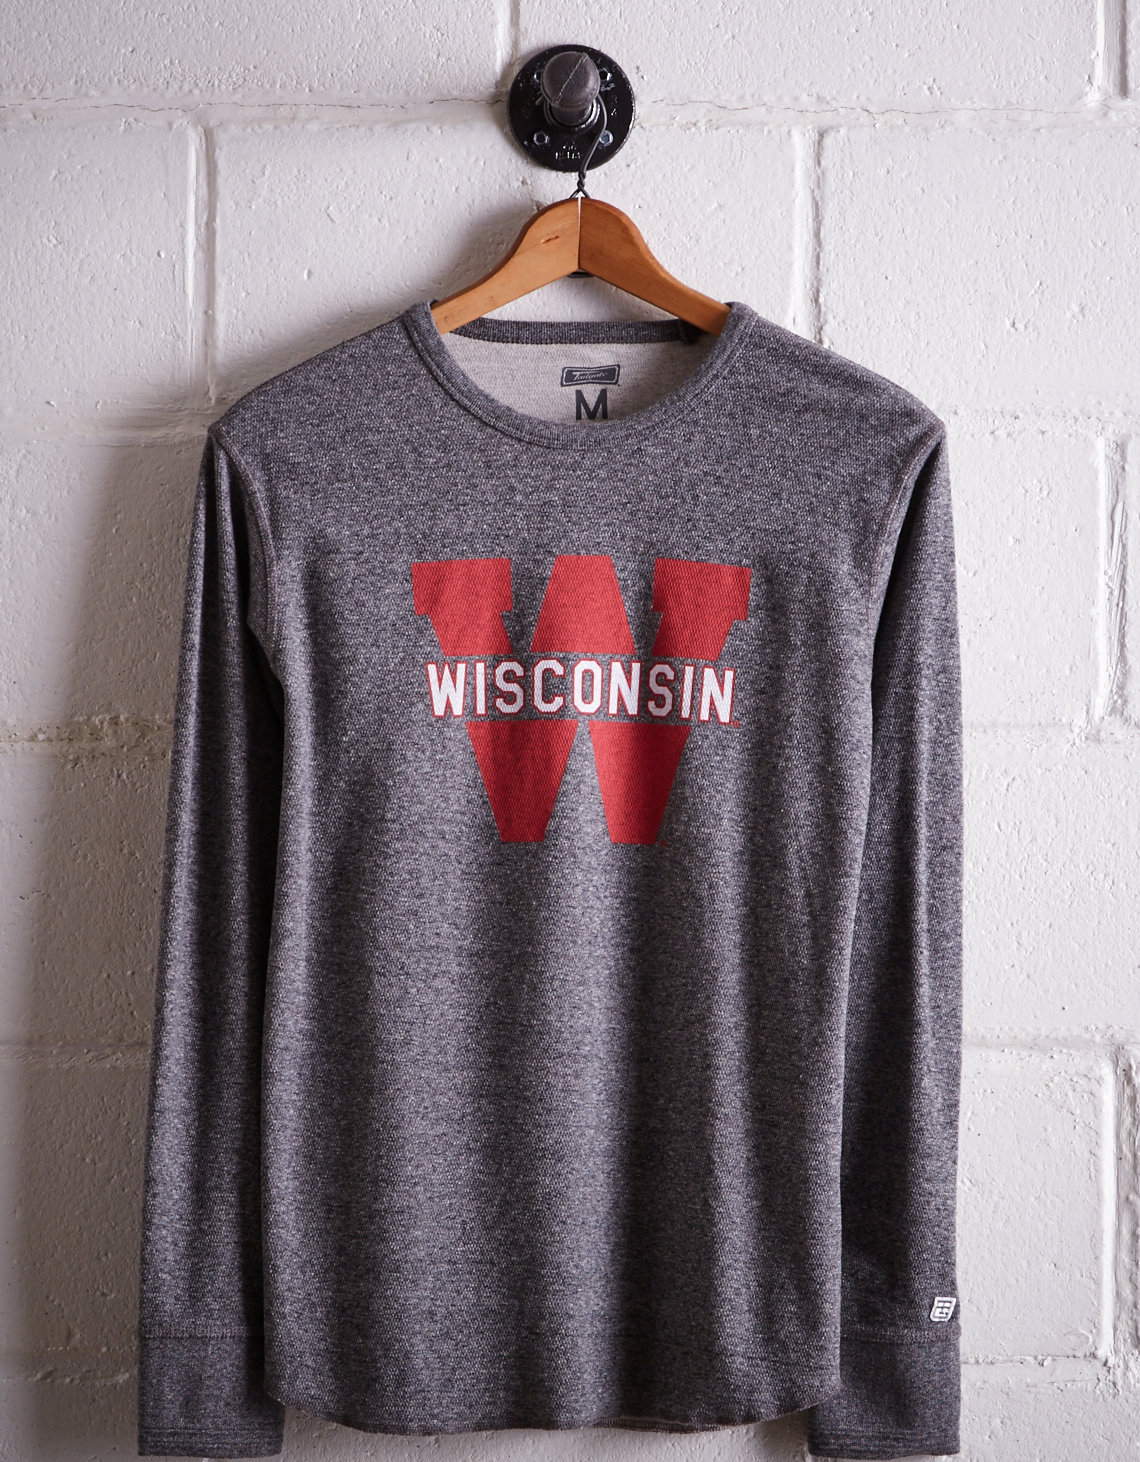 Tailgate Men's Wisconsin Thermal Shirt